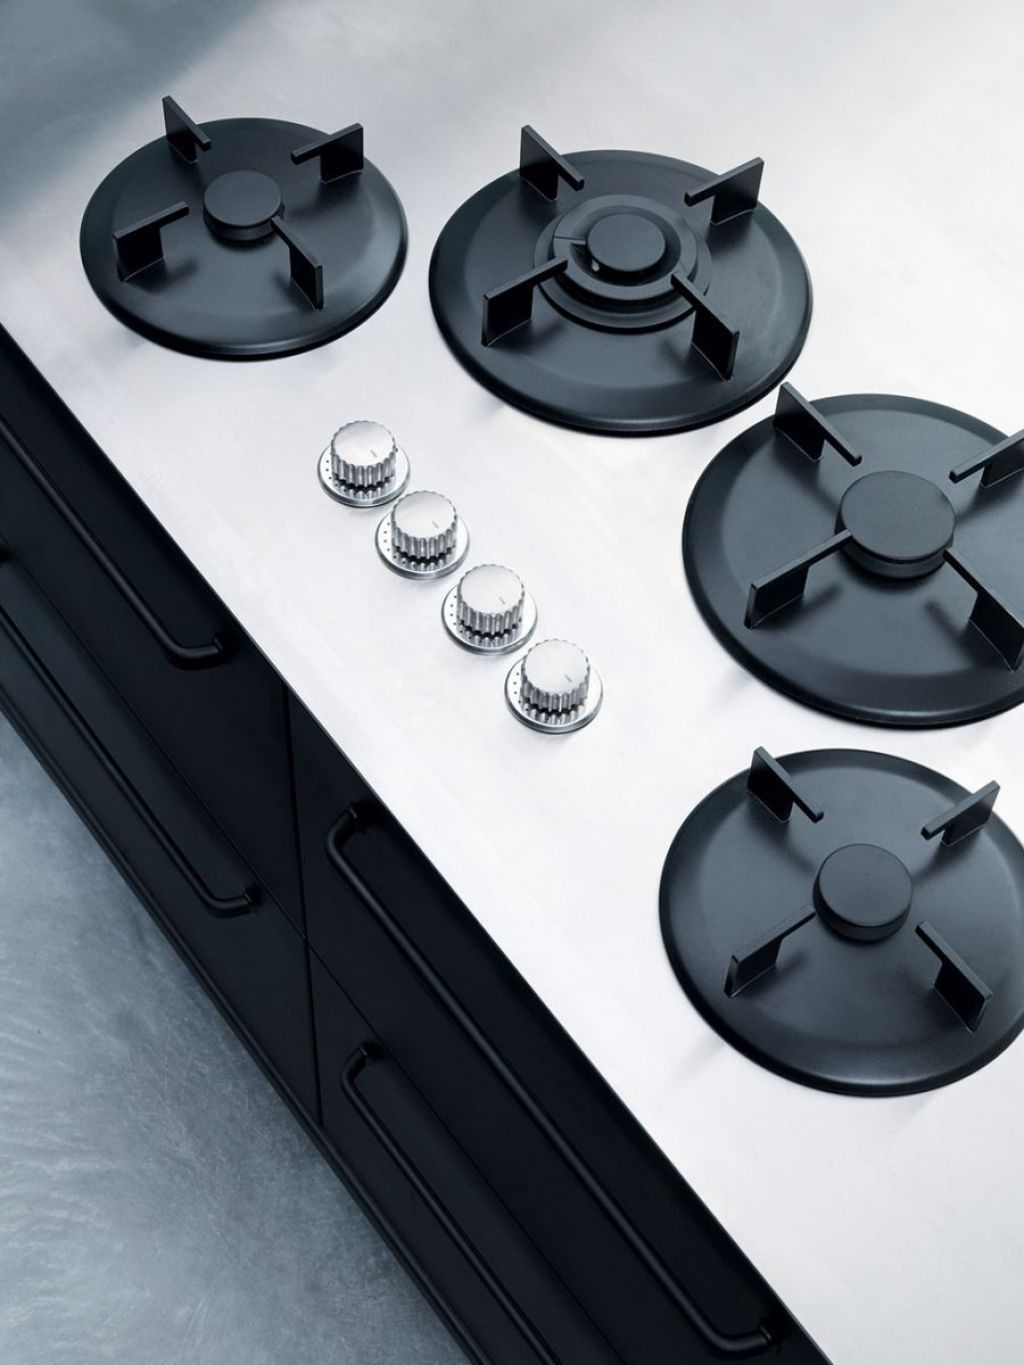 Gas Kitchen Stove Your Gas Kitchen Stove Is Among The Most Useful Appliances In Your Home A Ga Kitchen Stove Modern Kitchen Stoves Stainless Steel Kitchen